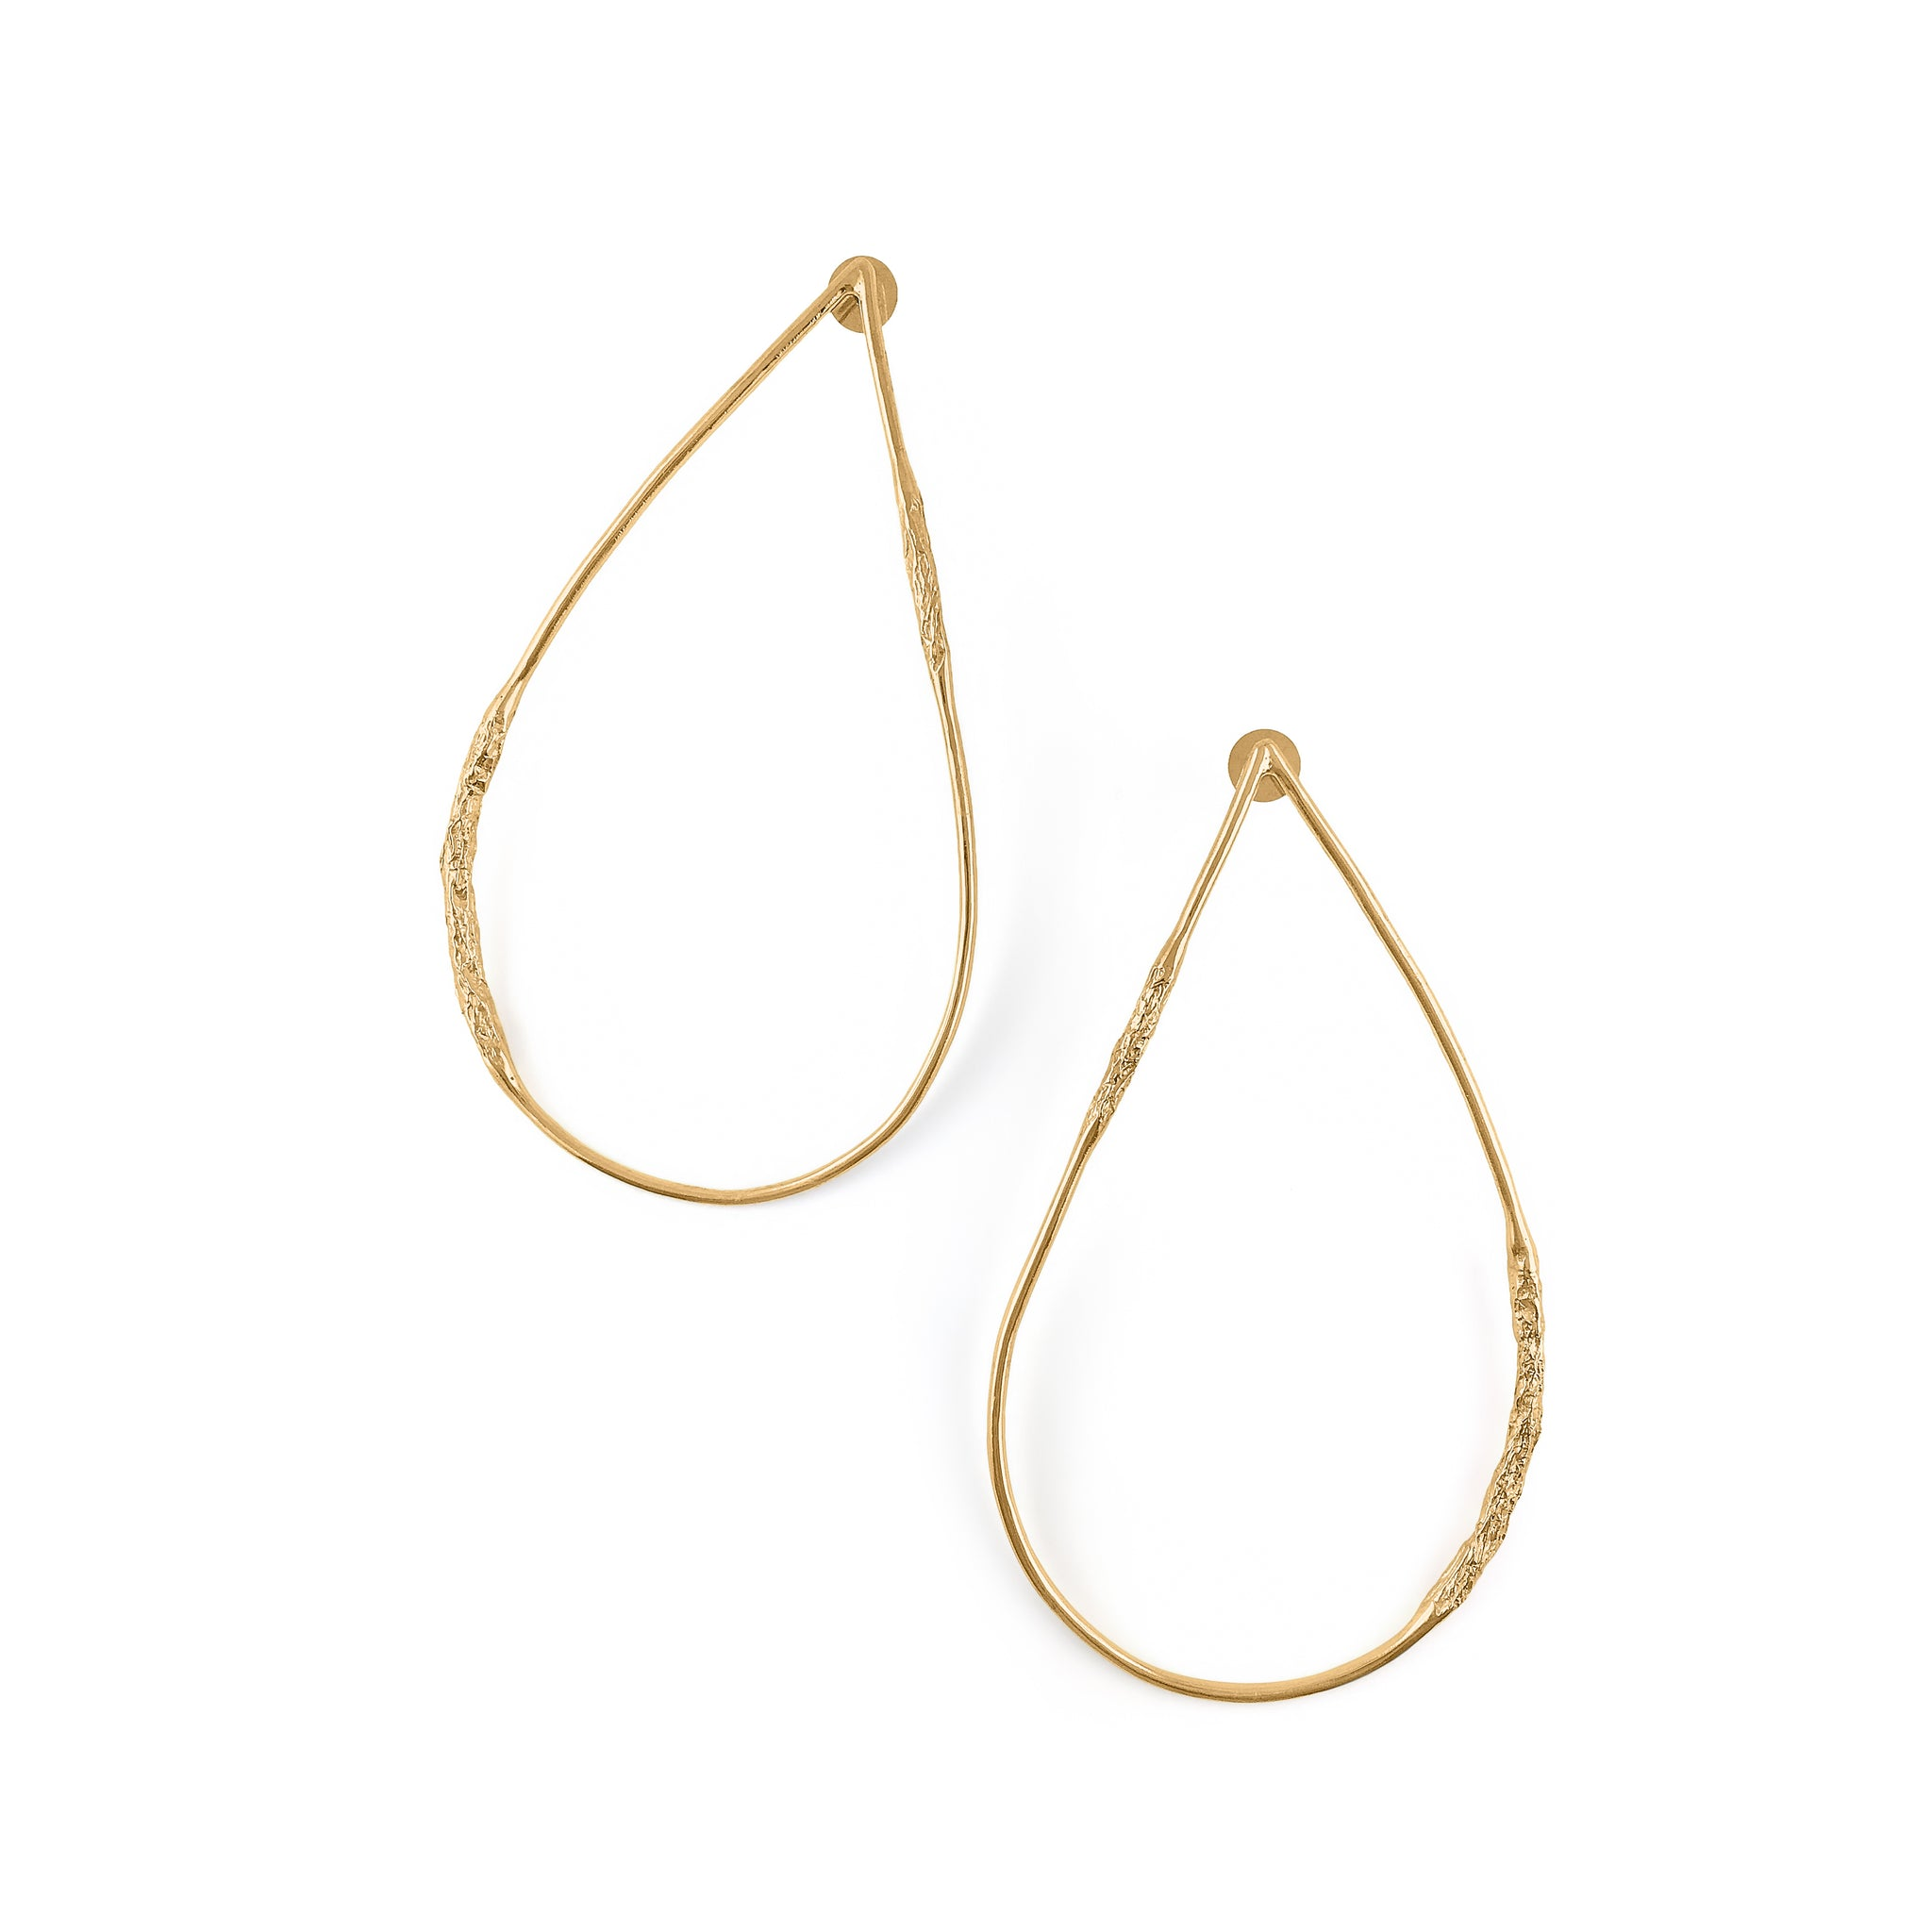 MISHO DESIGNS - TEXTURED PEAR HOOP EARRINGS